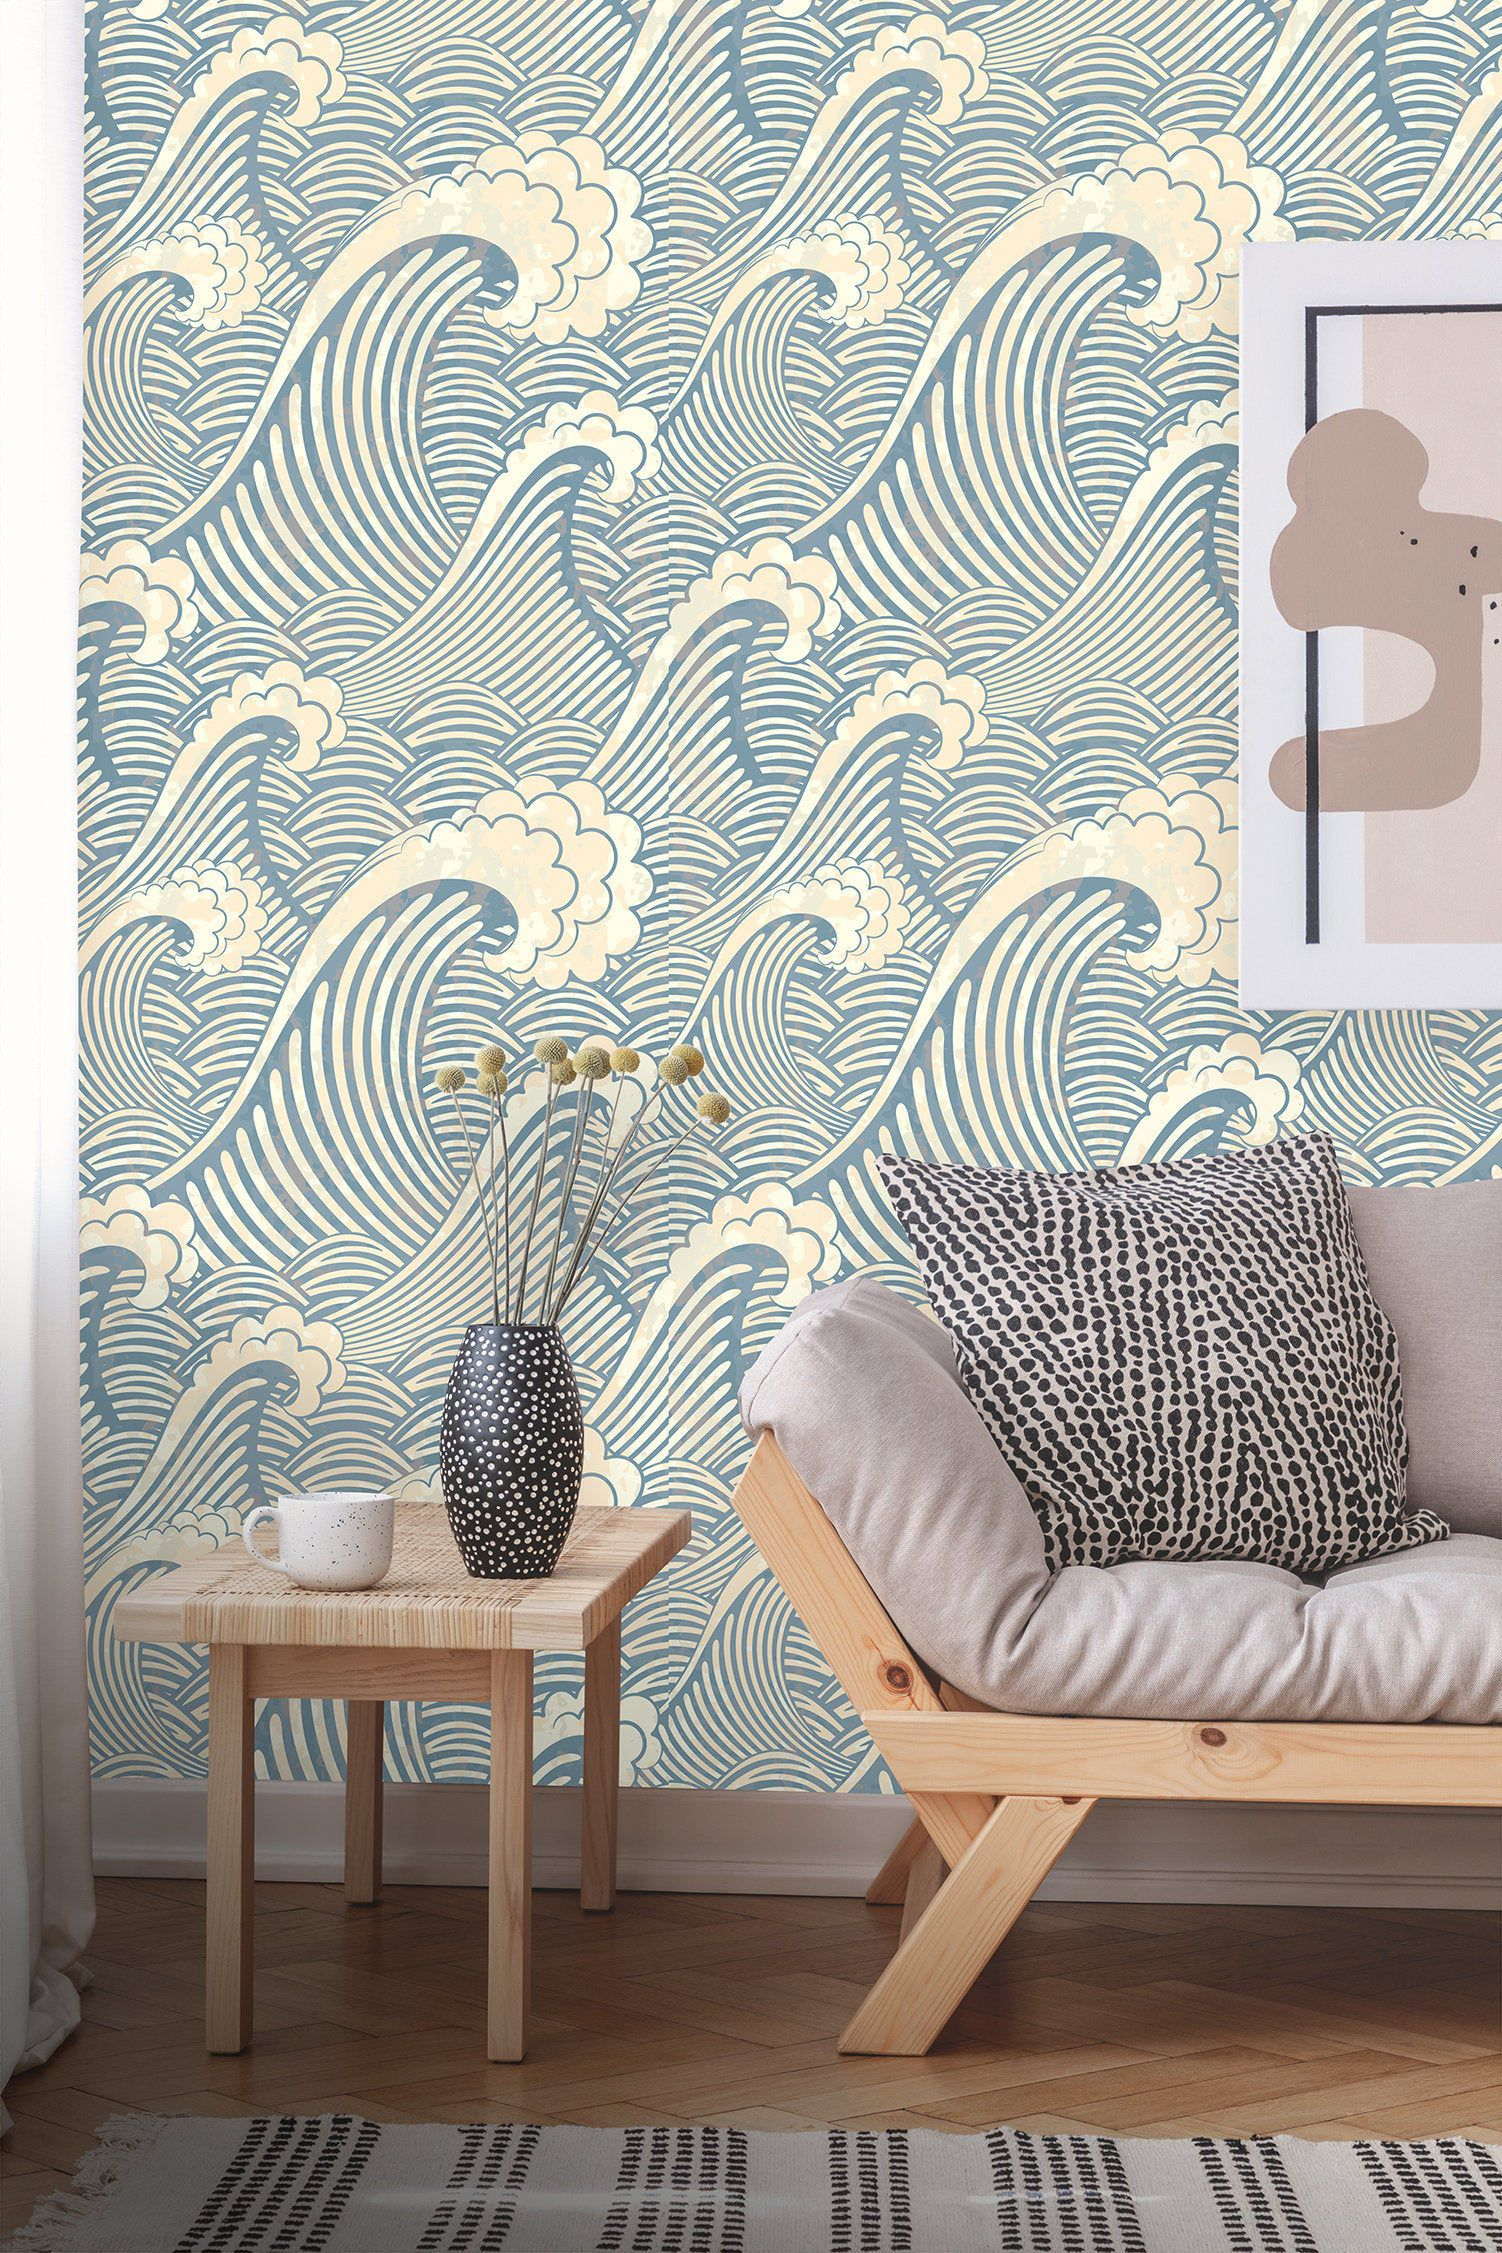 Removable Wallpaper Peel And Stick Great Wave Pattern Etsy In 2020 Removable Wallpaper Waves Wallpaper Wall Wallpaper